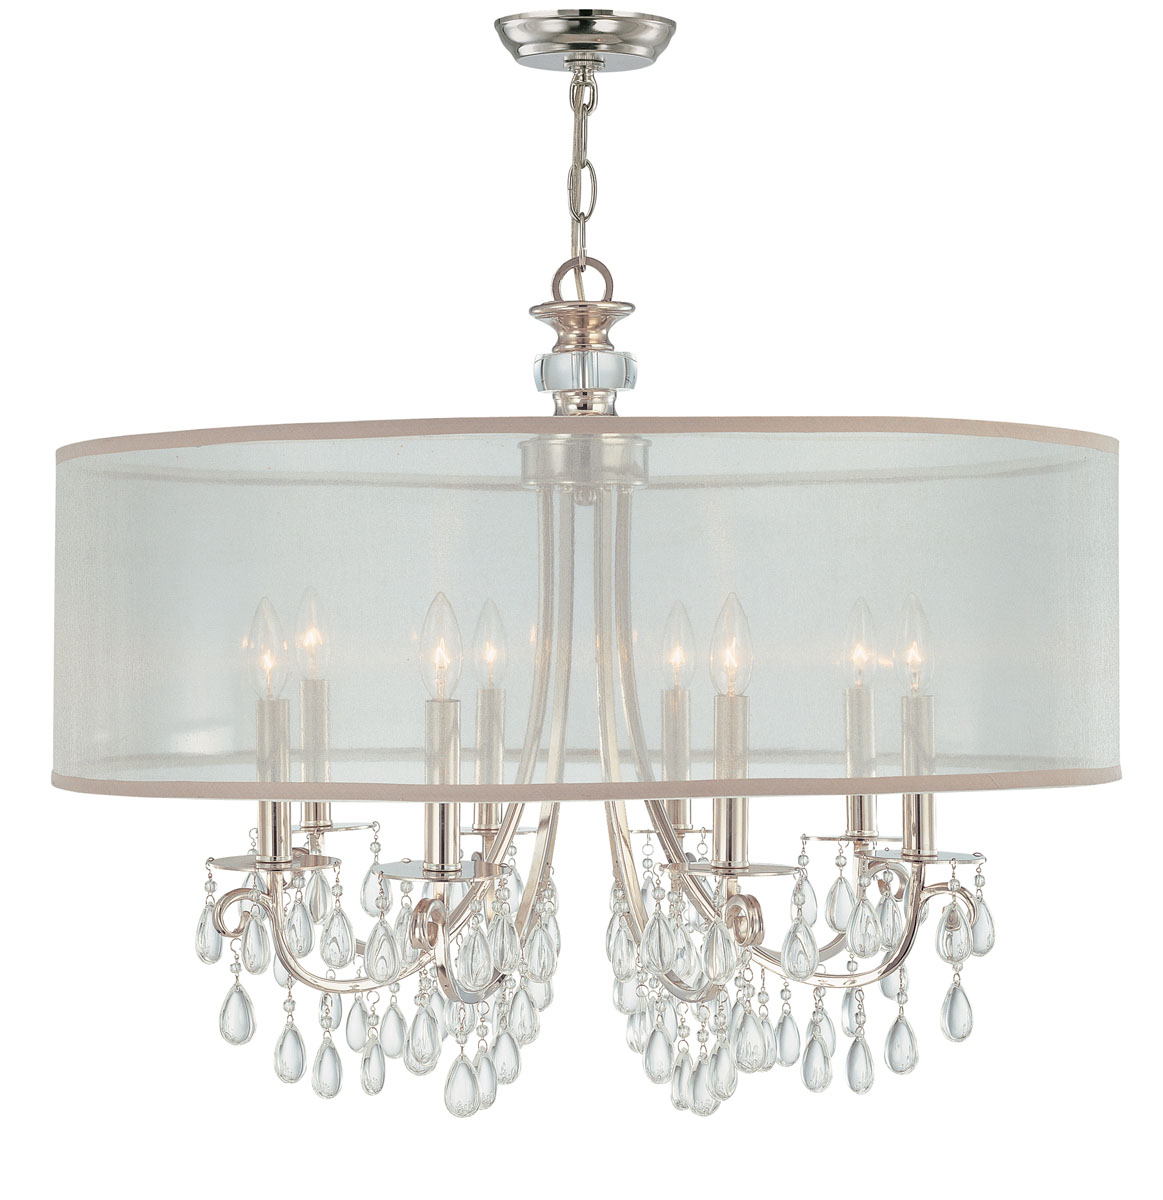 hampton 8 light chandelier. Black Bedroom Furniture Sets. Home Design Ideas